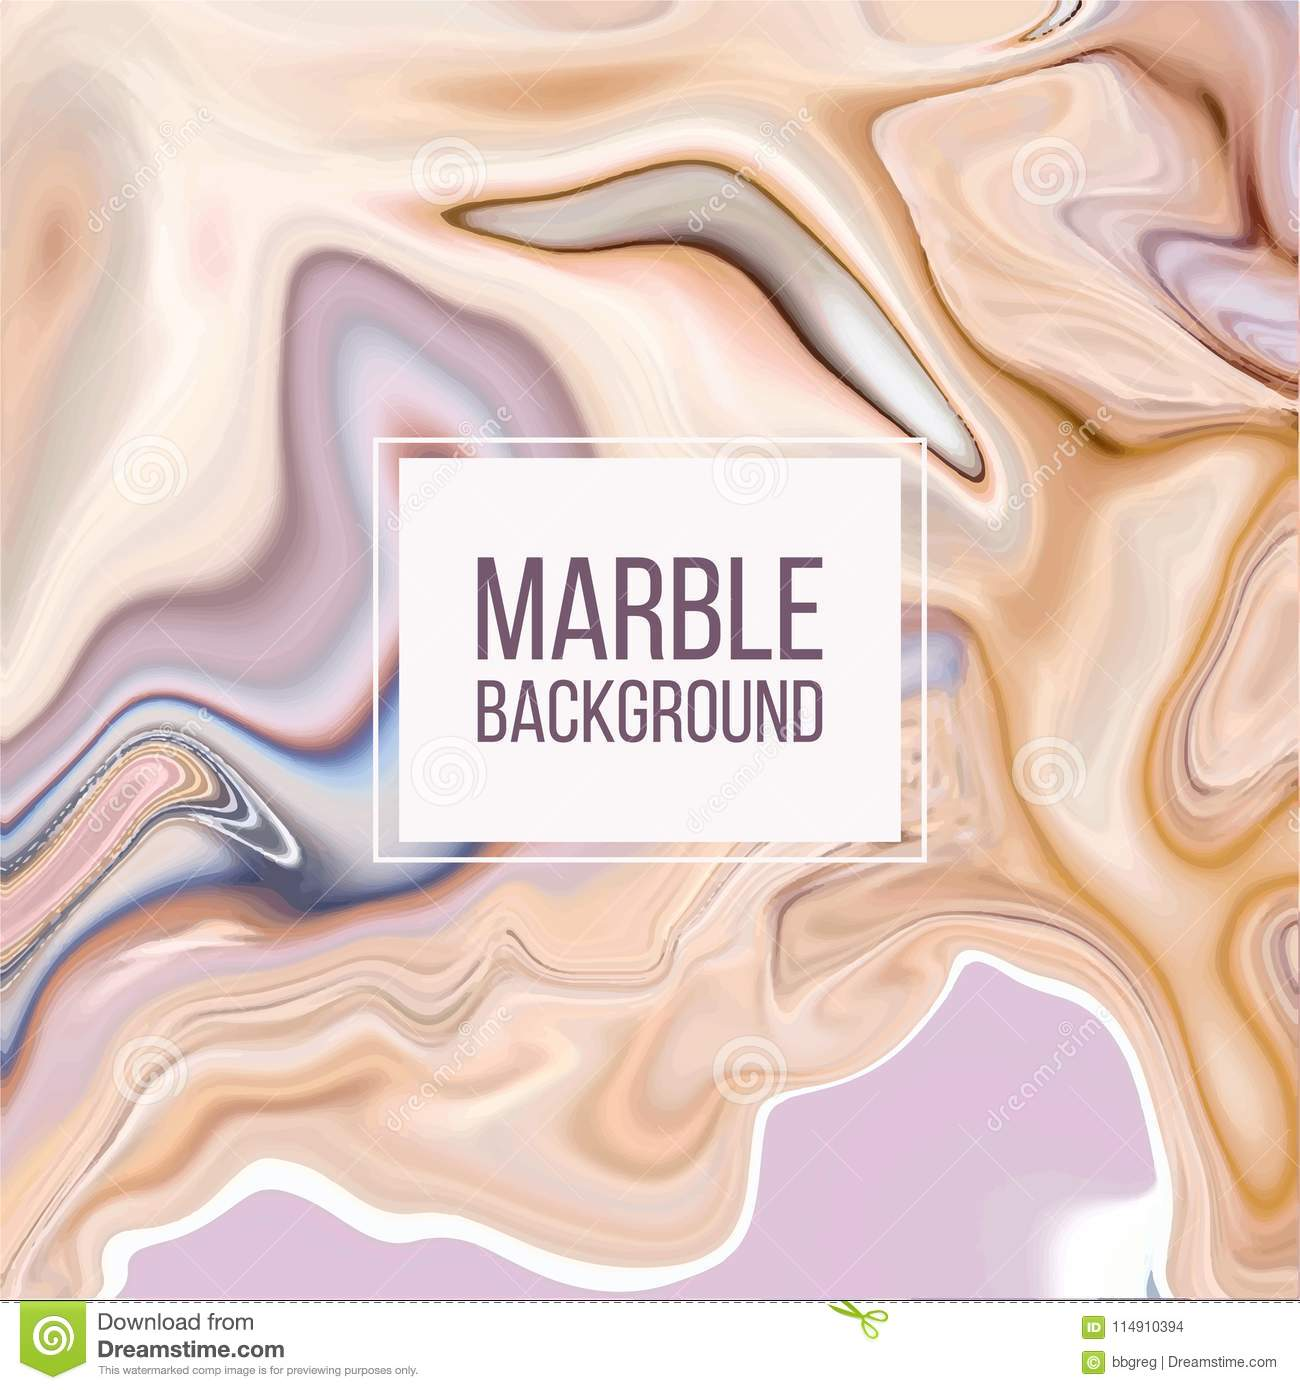 Marble Texture Background White Brown Marble Pattern Texture Abstract Background Can Be Used For Background Wallpaper Stock Vector Illustration Of Beautiful Background 114910394